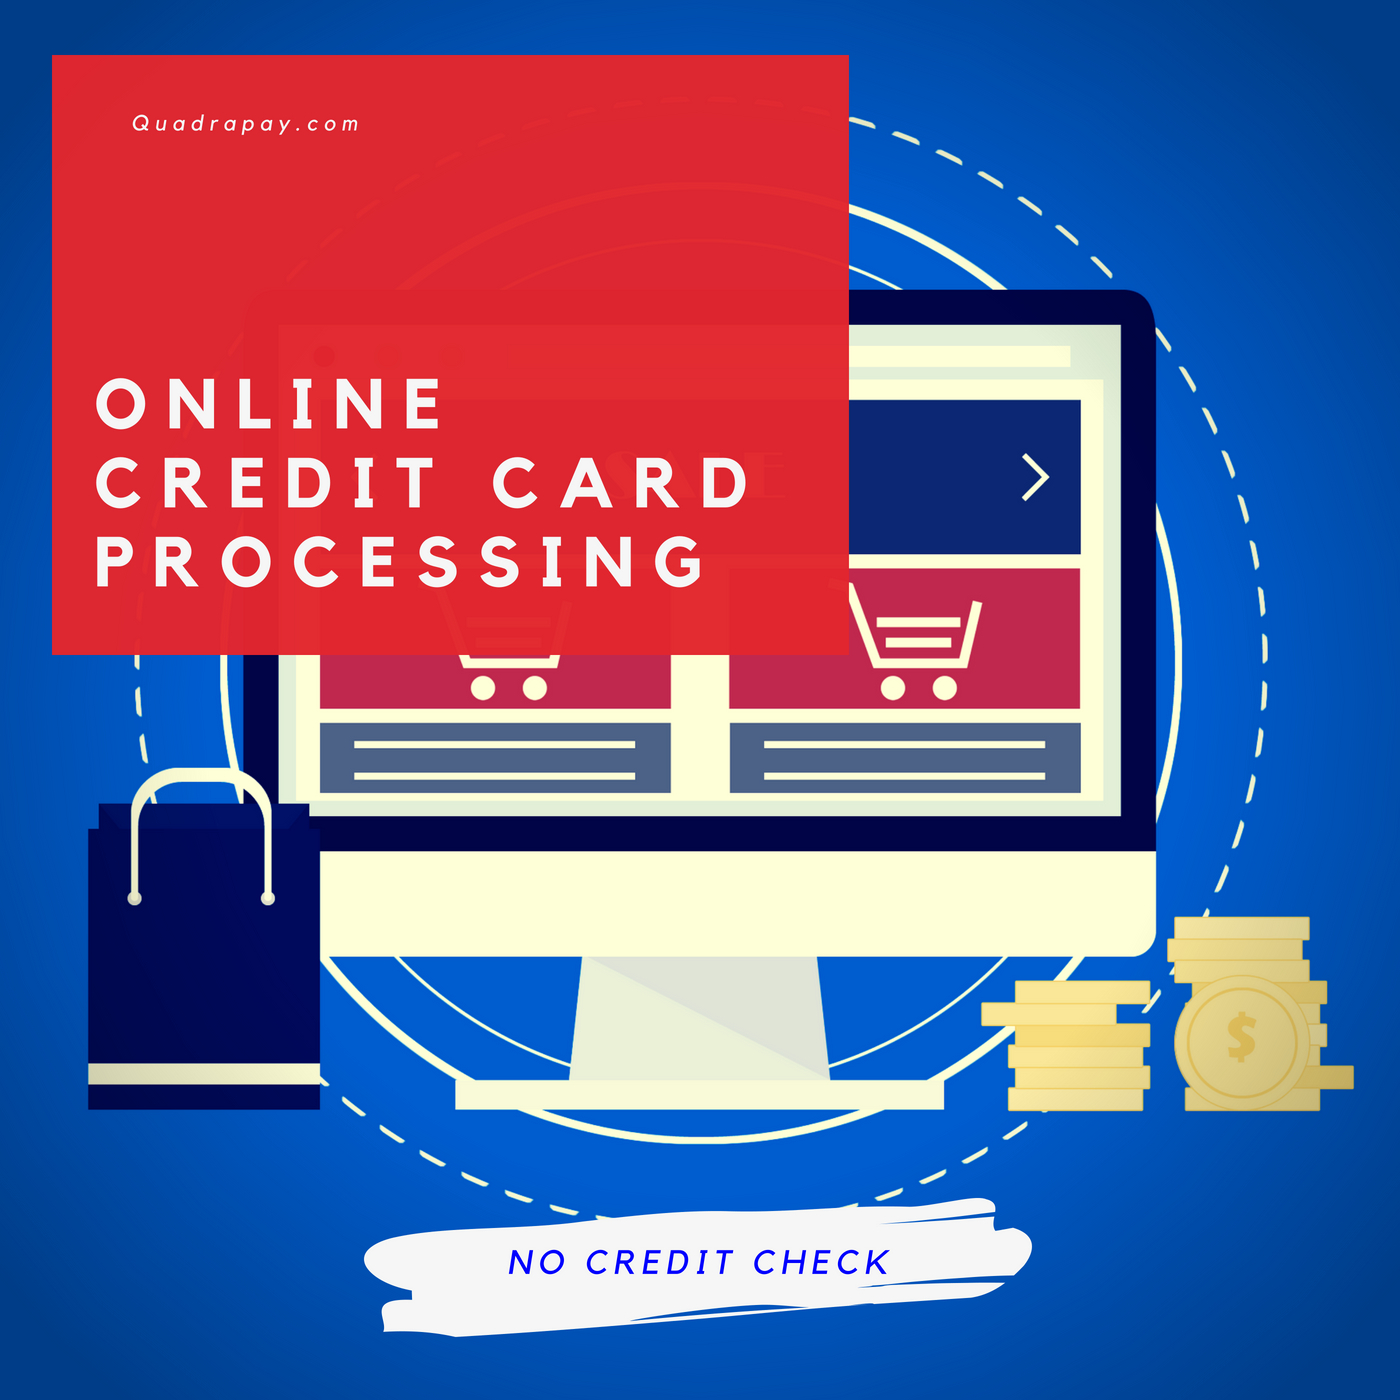 Online Credit Card Processing No Credit Check